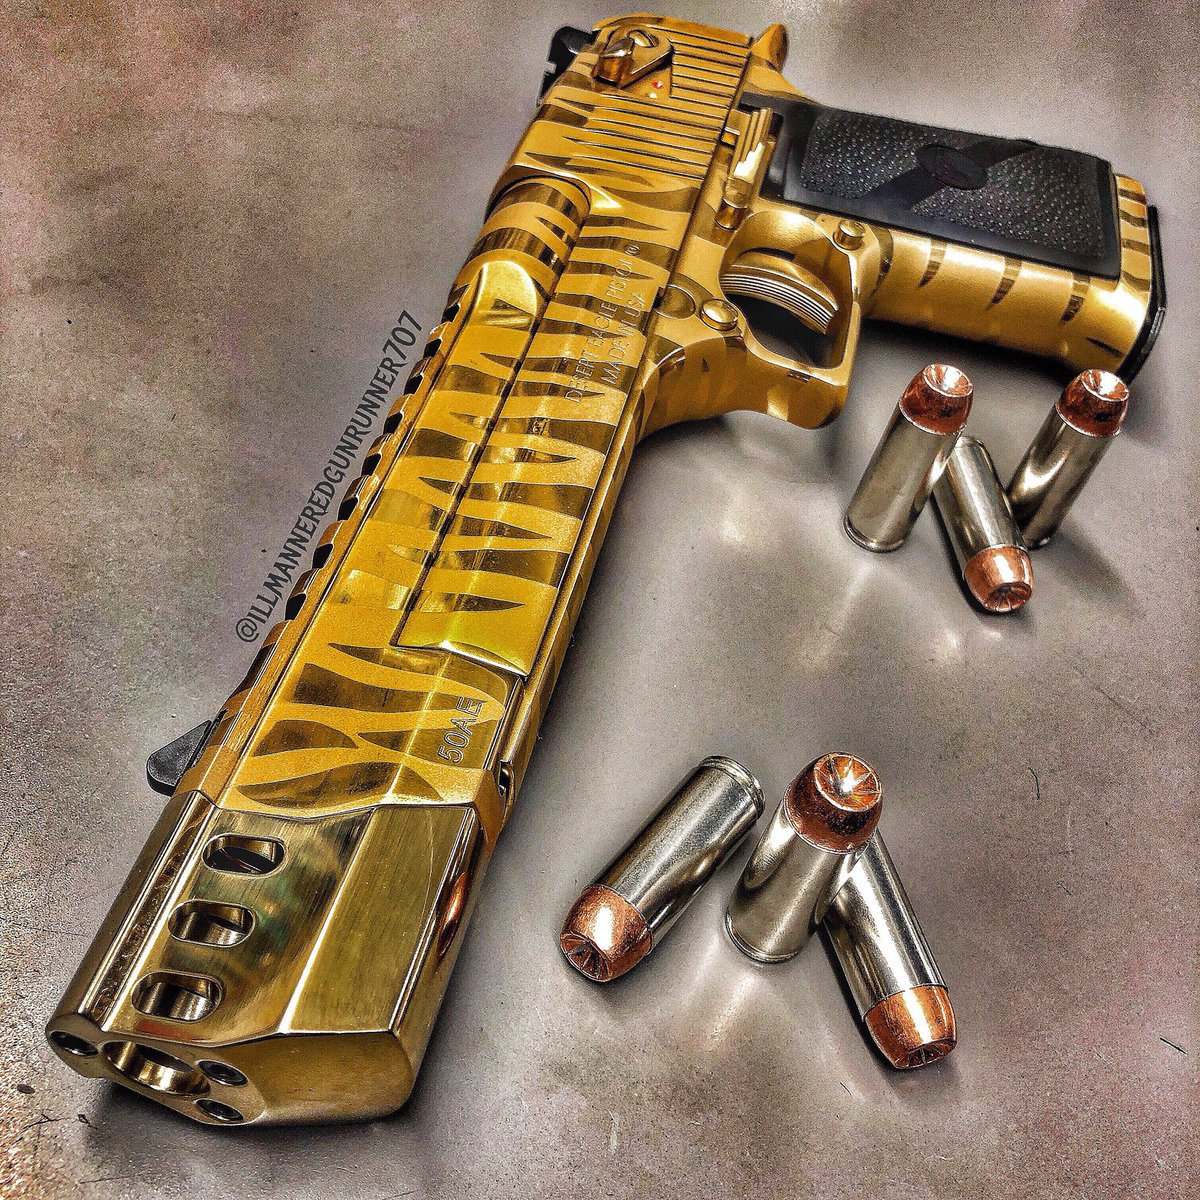 Illmannered Gun Runner 707 A Twitteren Tiger Striped Desert Eagle